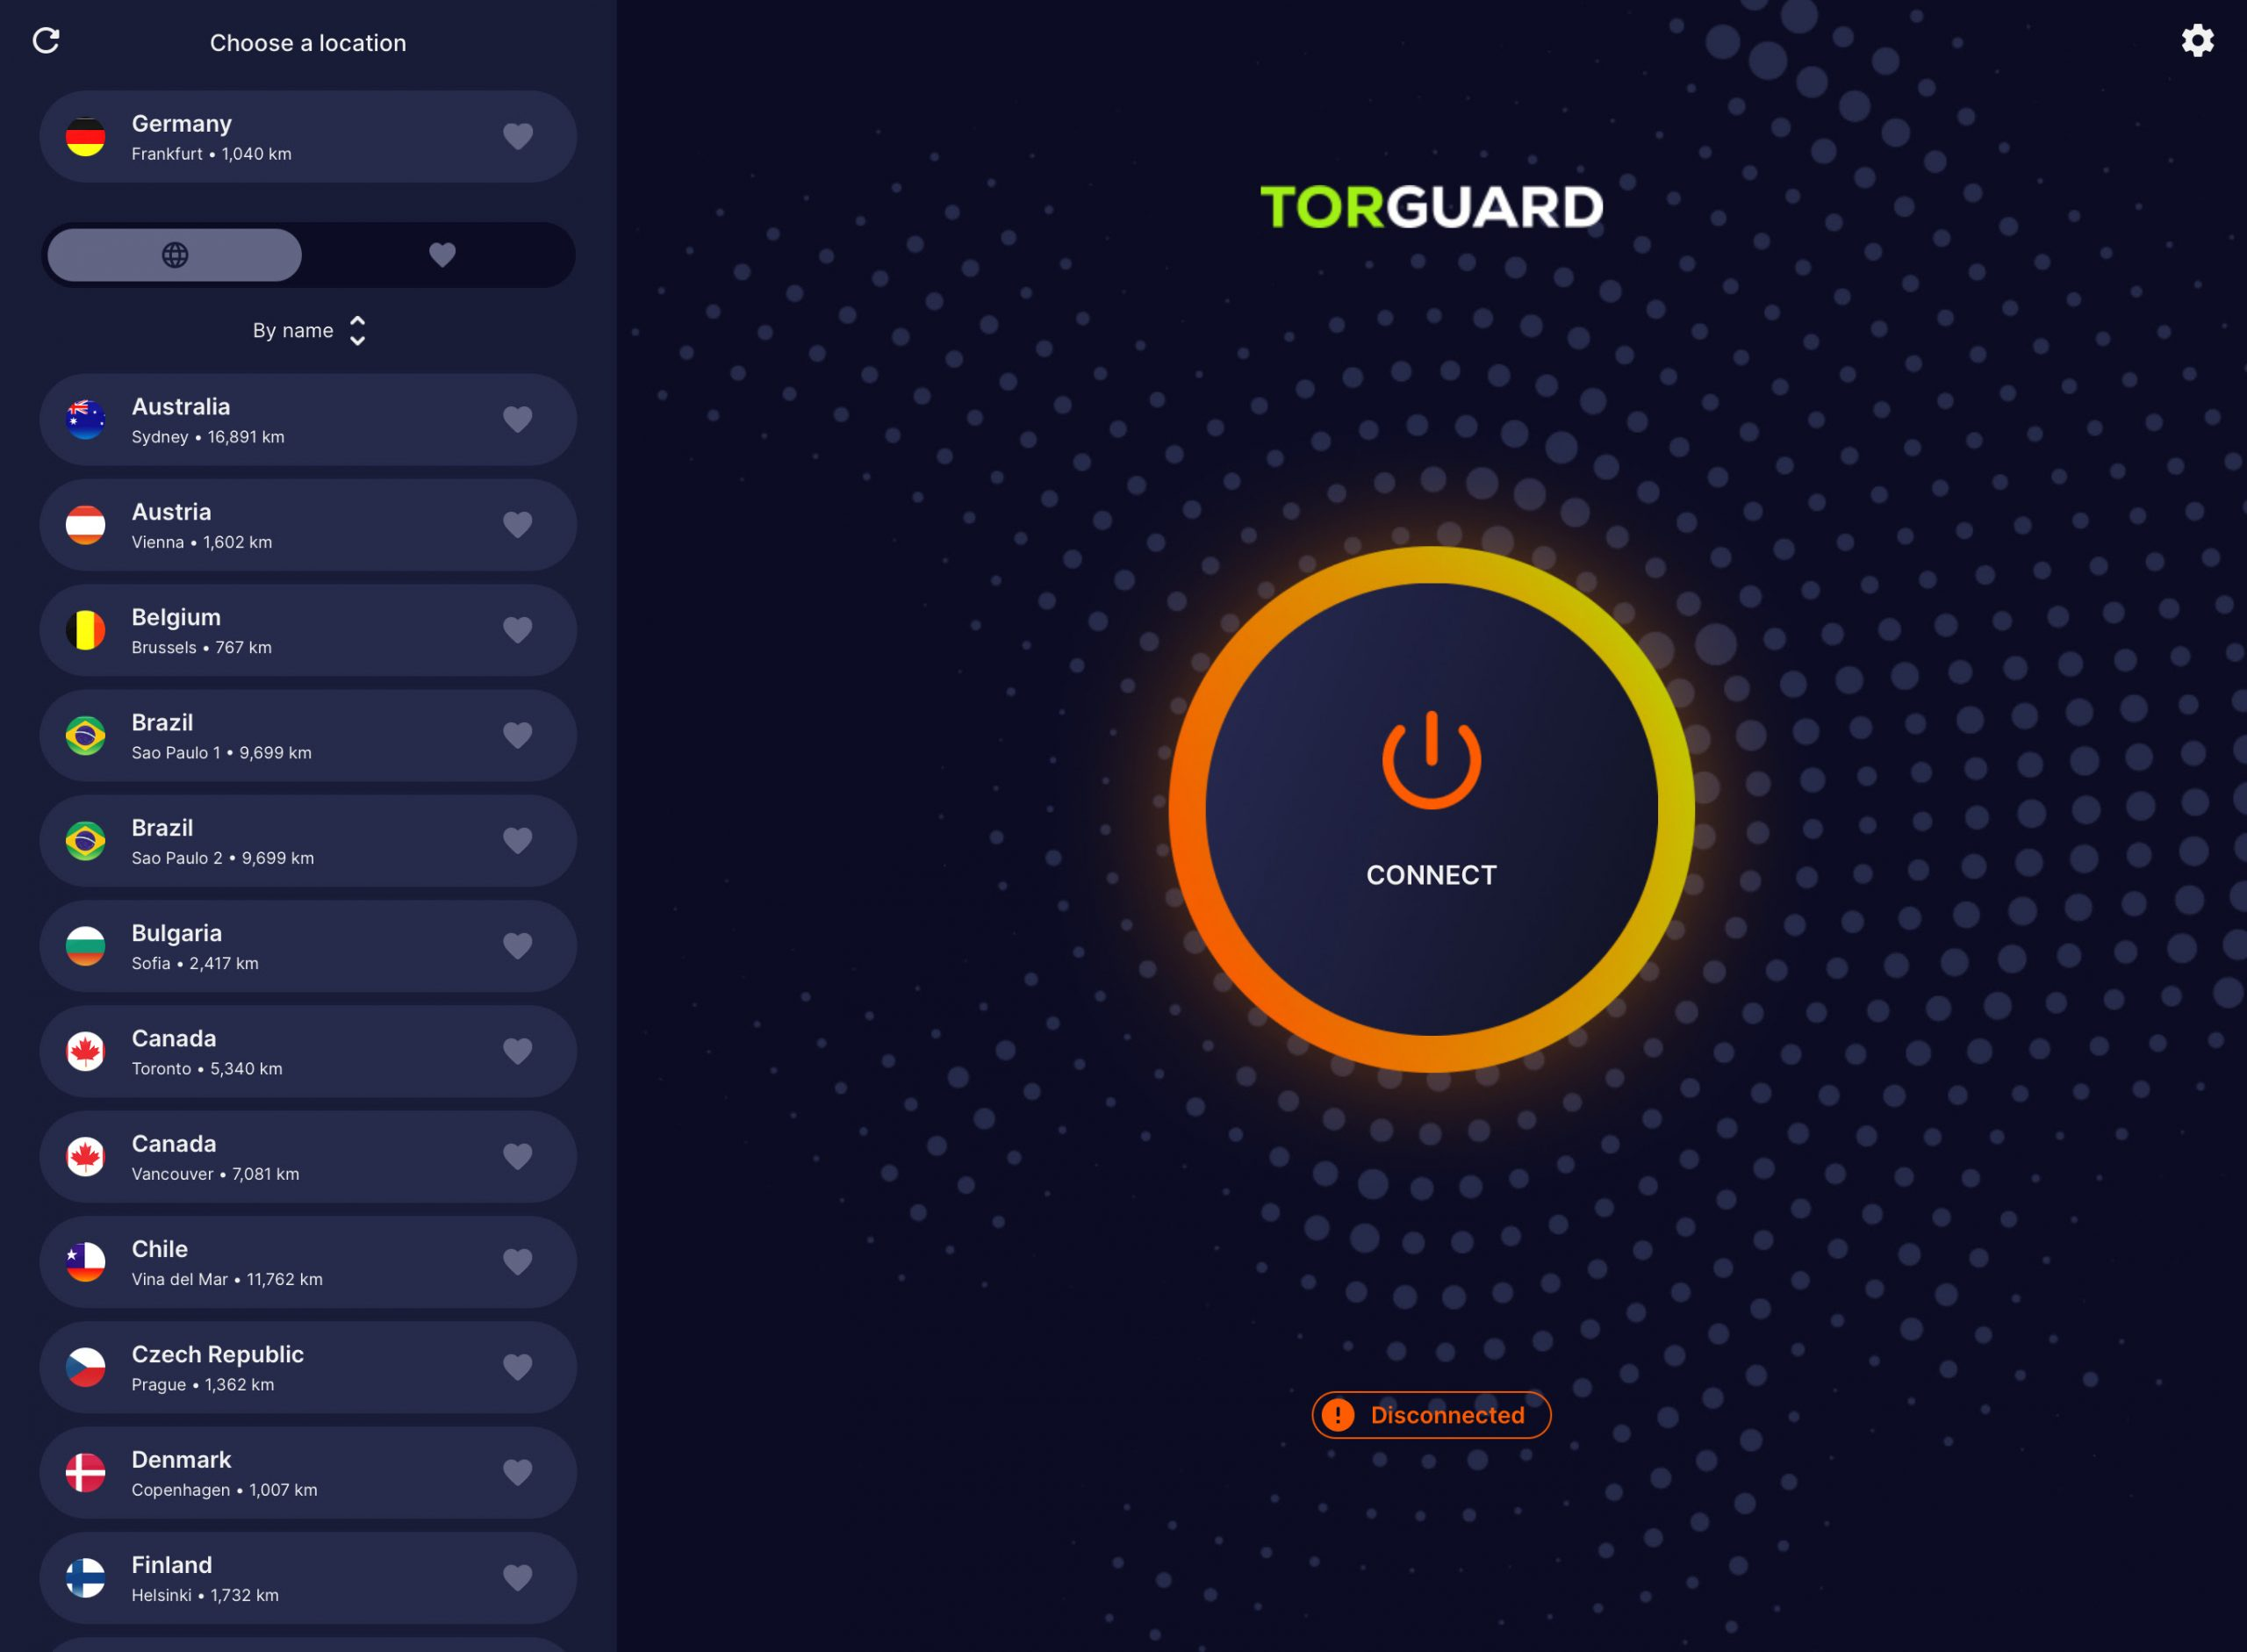 Meet the New TorGuard iOS App